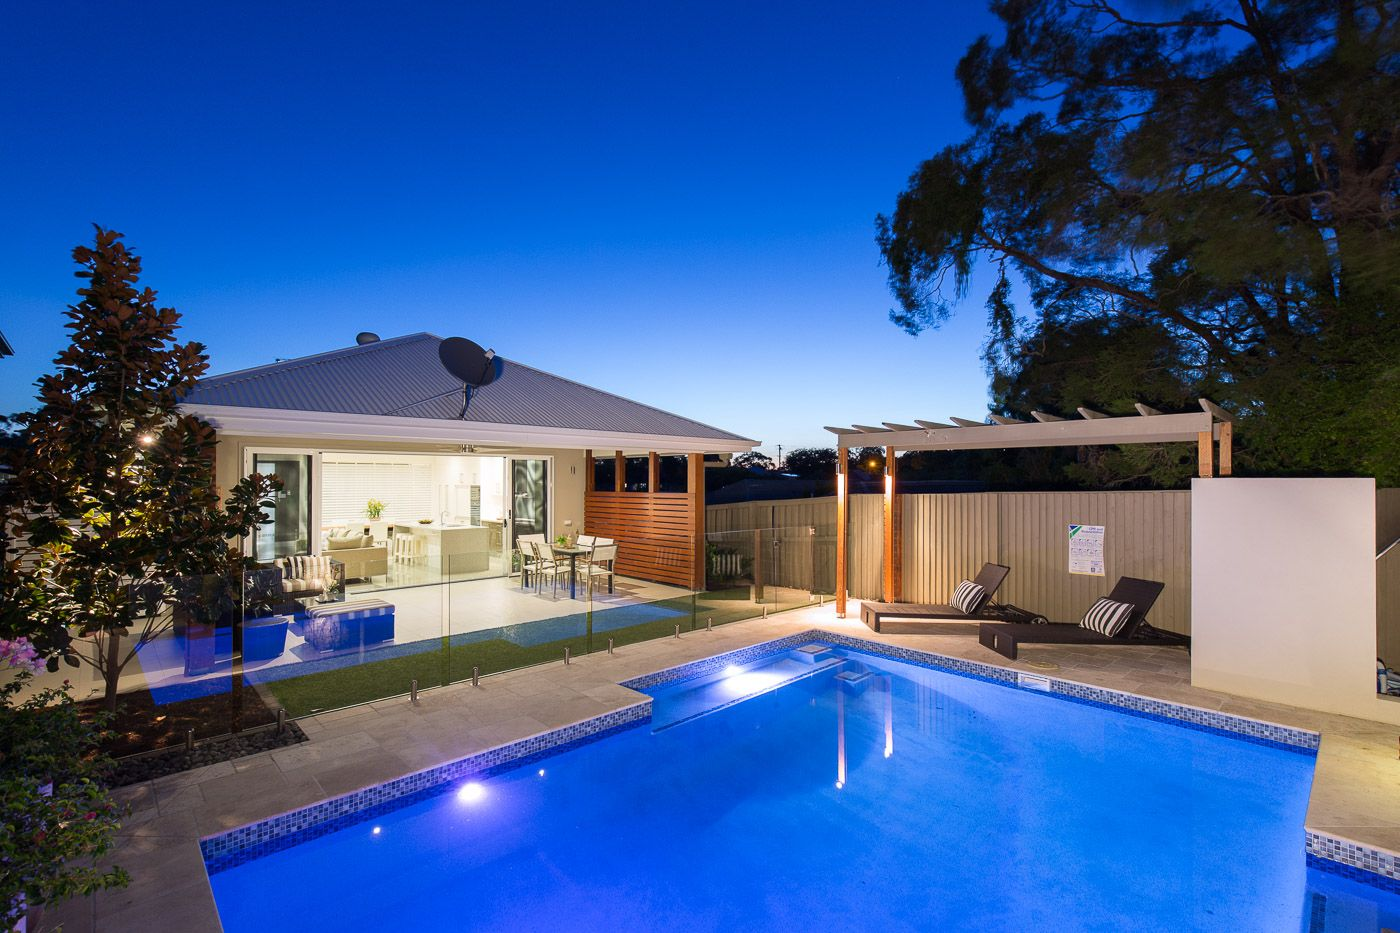 71 Gladstone Street Indooroopilly 4068